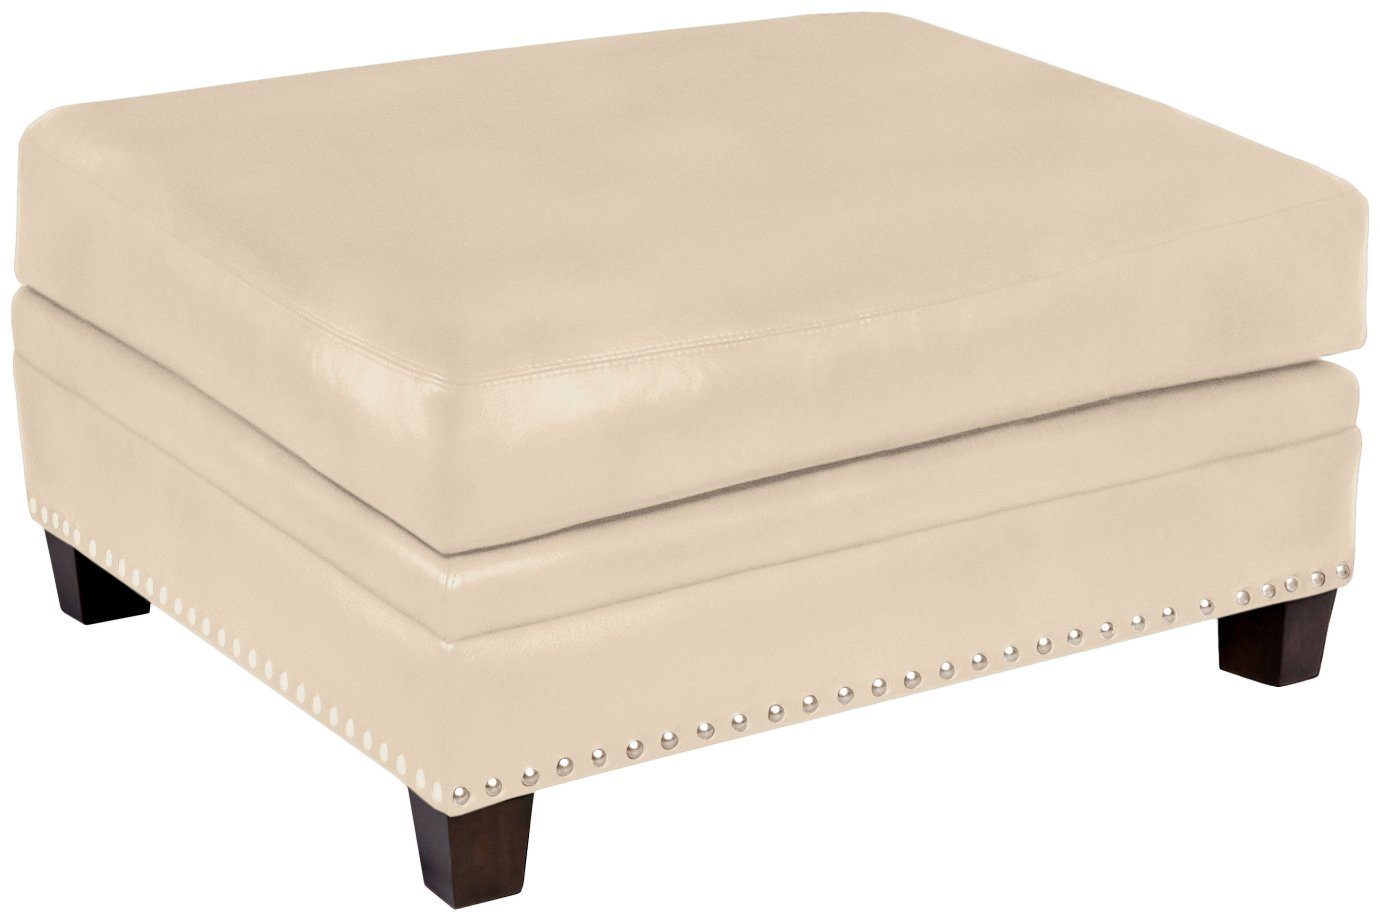 Omnia Leather Glendora Ottoman in Leather, with Nail Head, Softstations White Winter